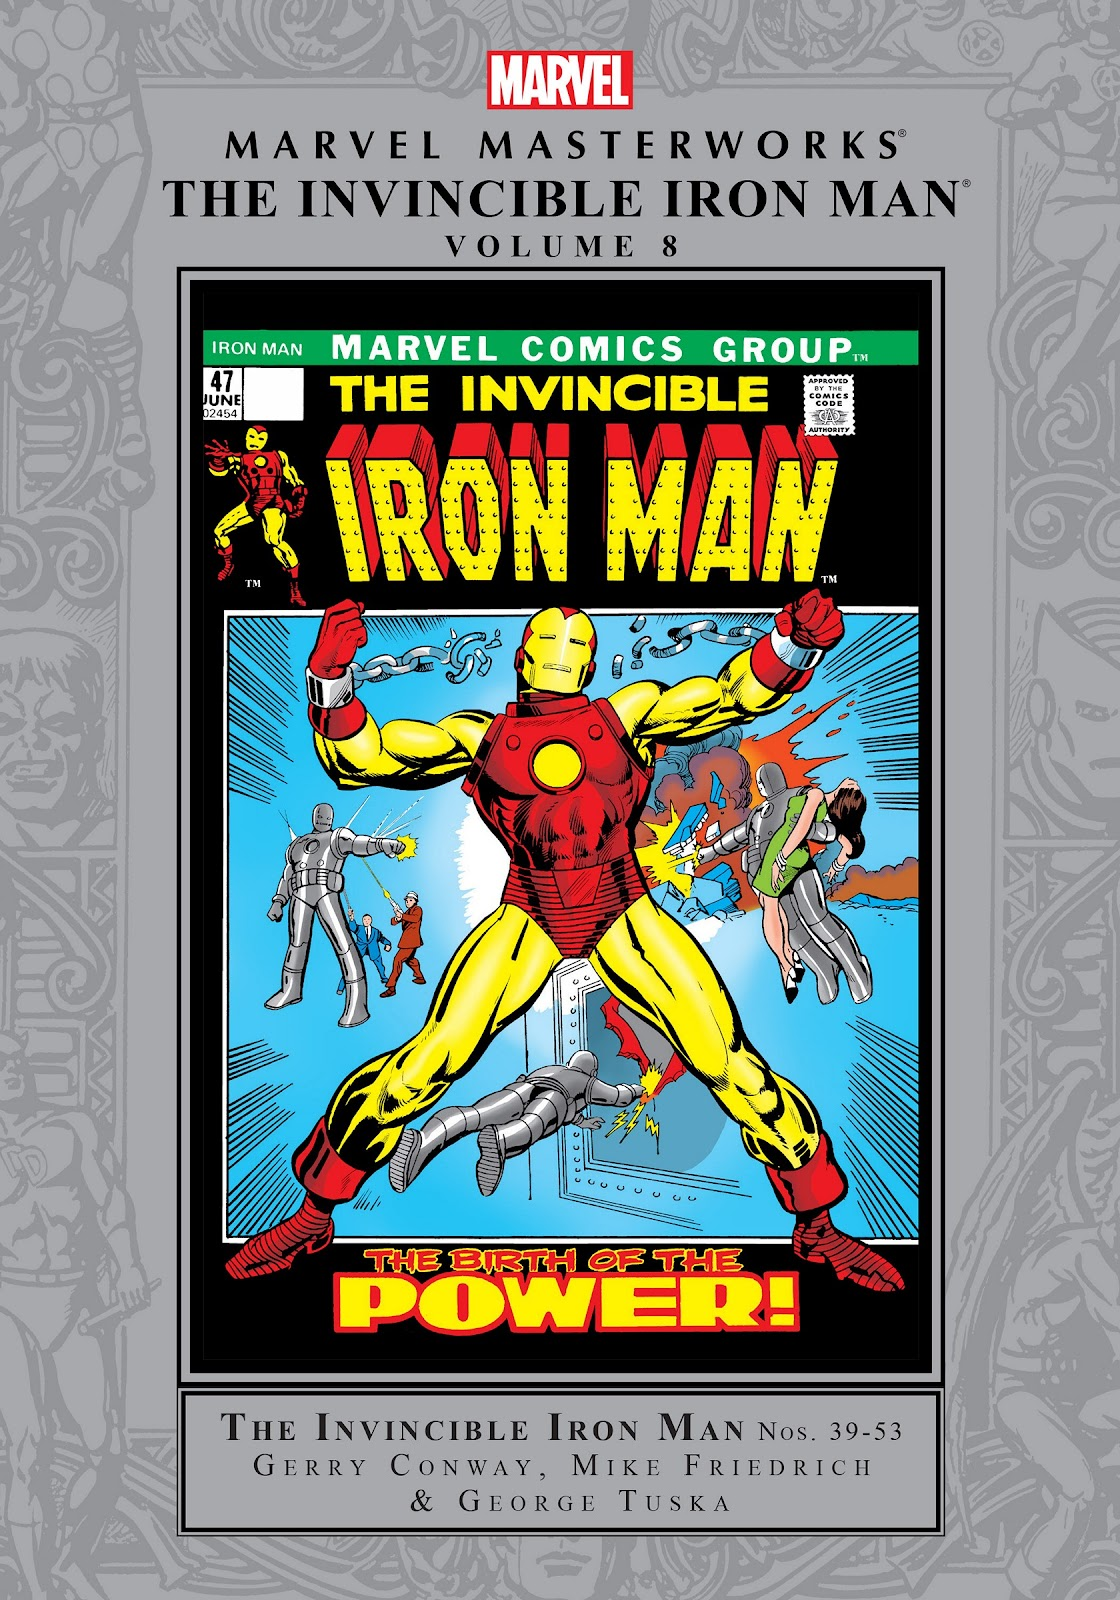 Read online Marvel Masterworks: The Invincible Iron Man comic -  Issue # TPB 8 (Part 1) - 1